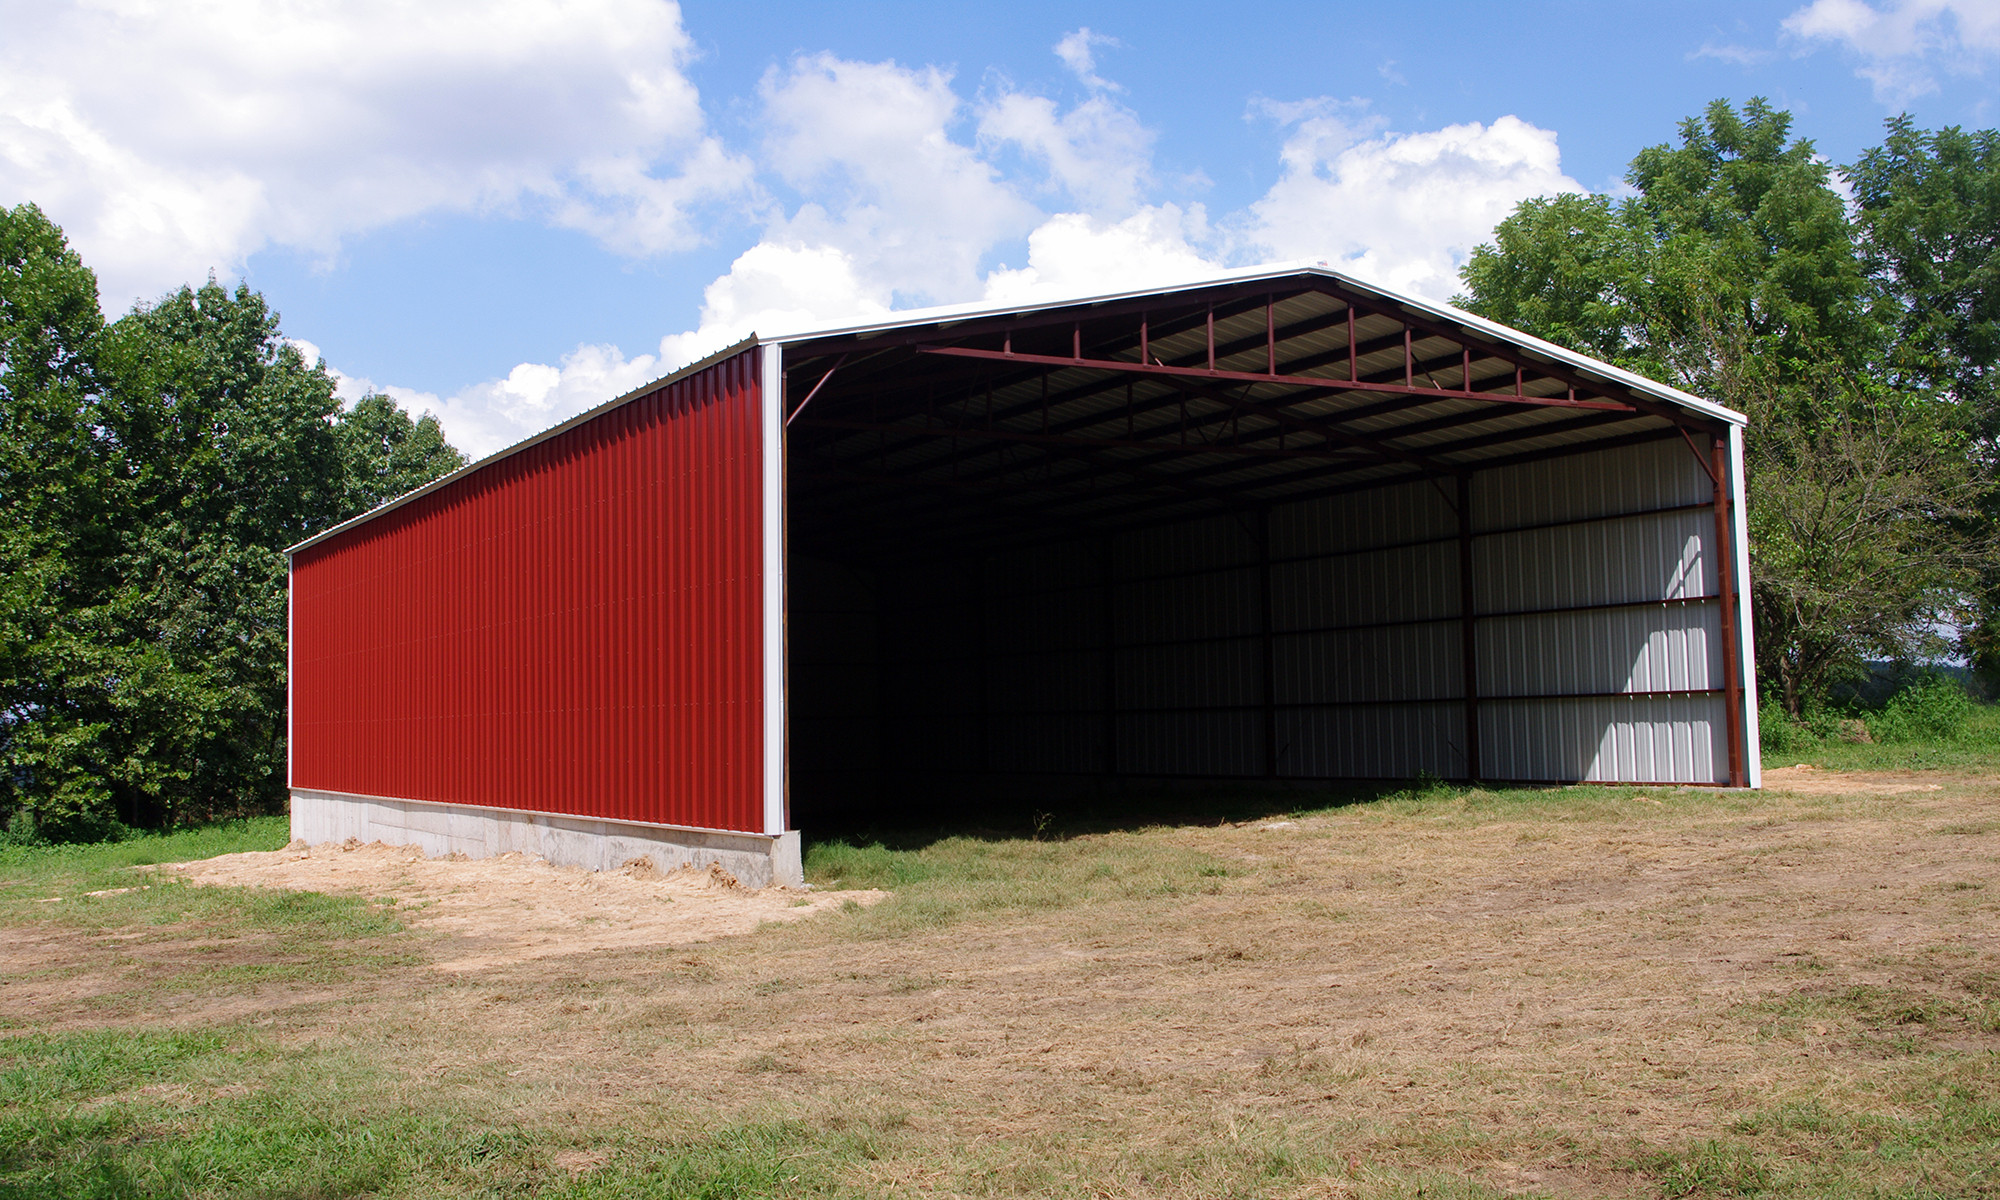 Best ideas about DIY Metal Building Kits . Save or Pin Global Steel Buildings Now.